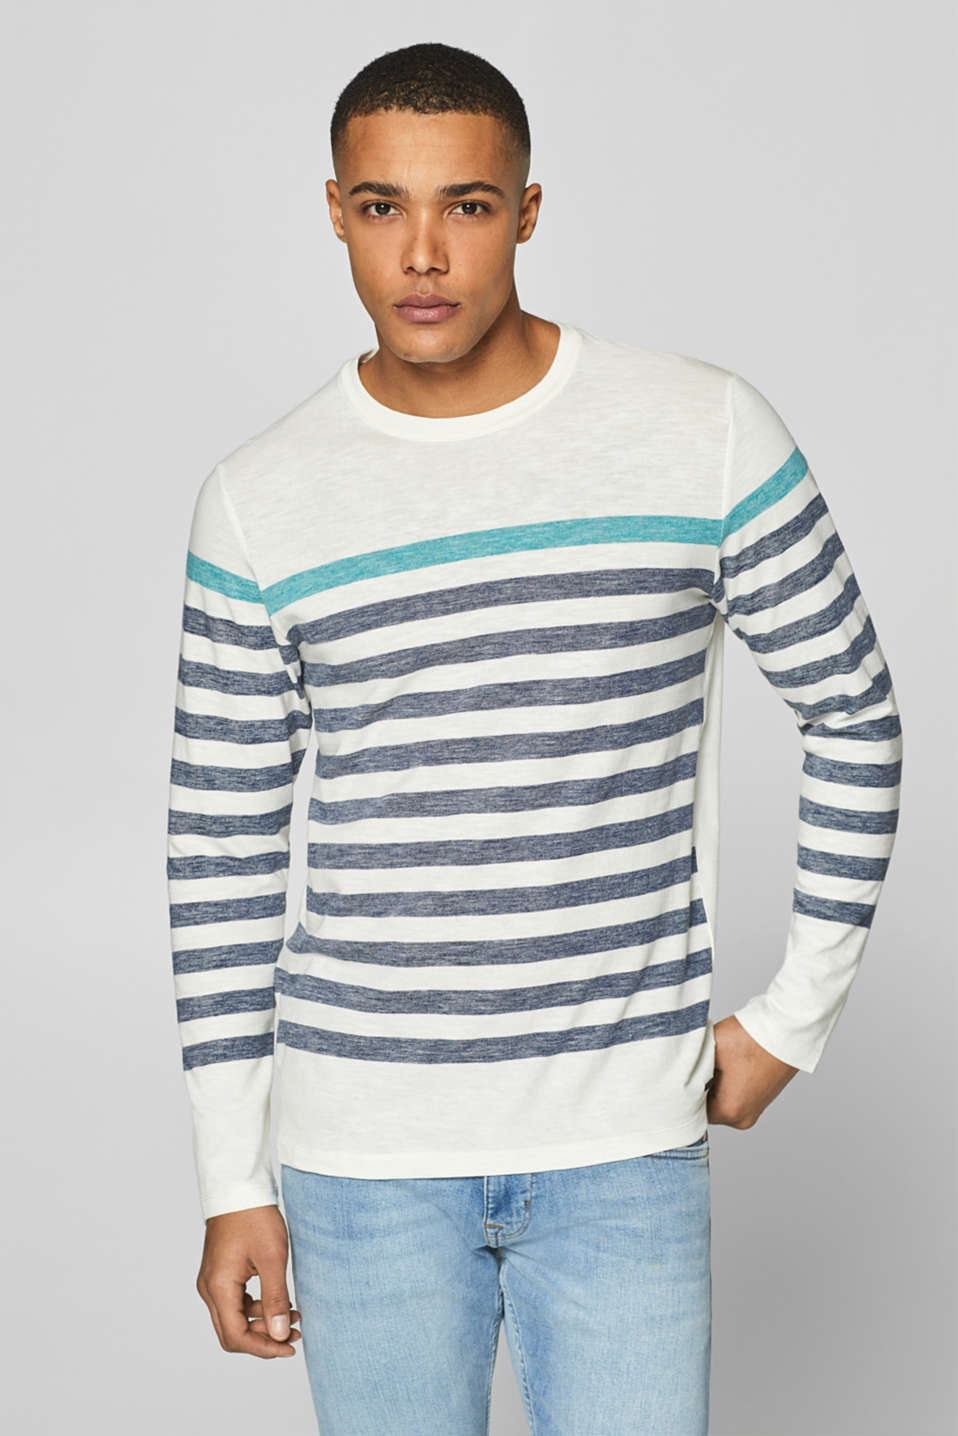 Esprit - Jersey long sleeve top with stripes, 100% cotton